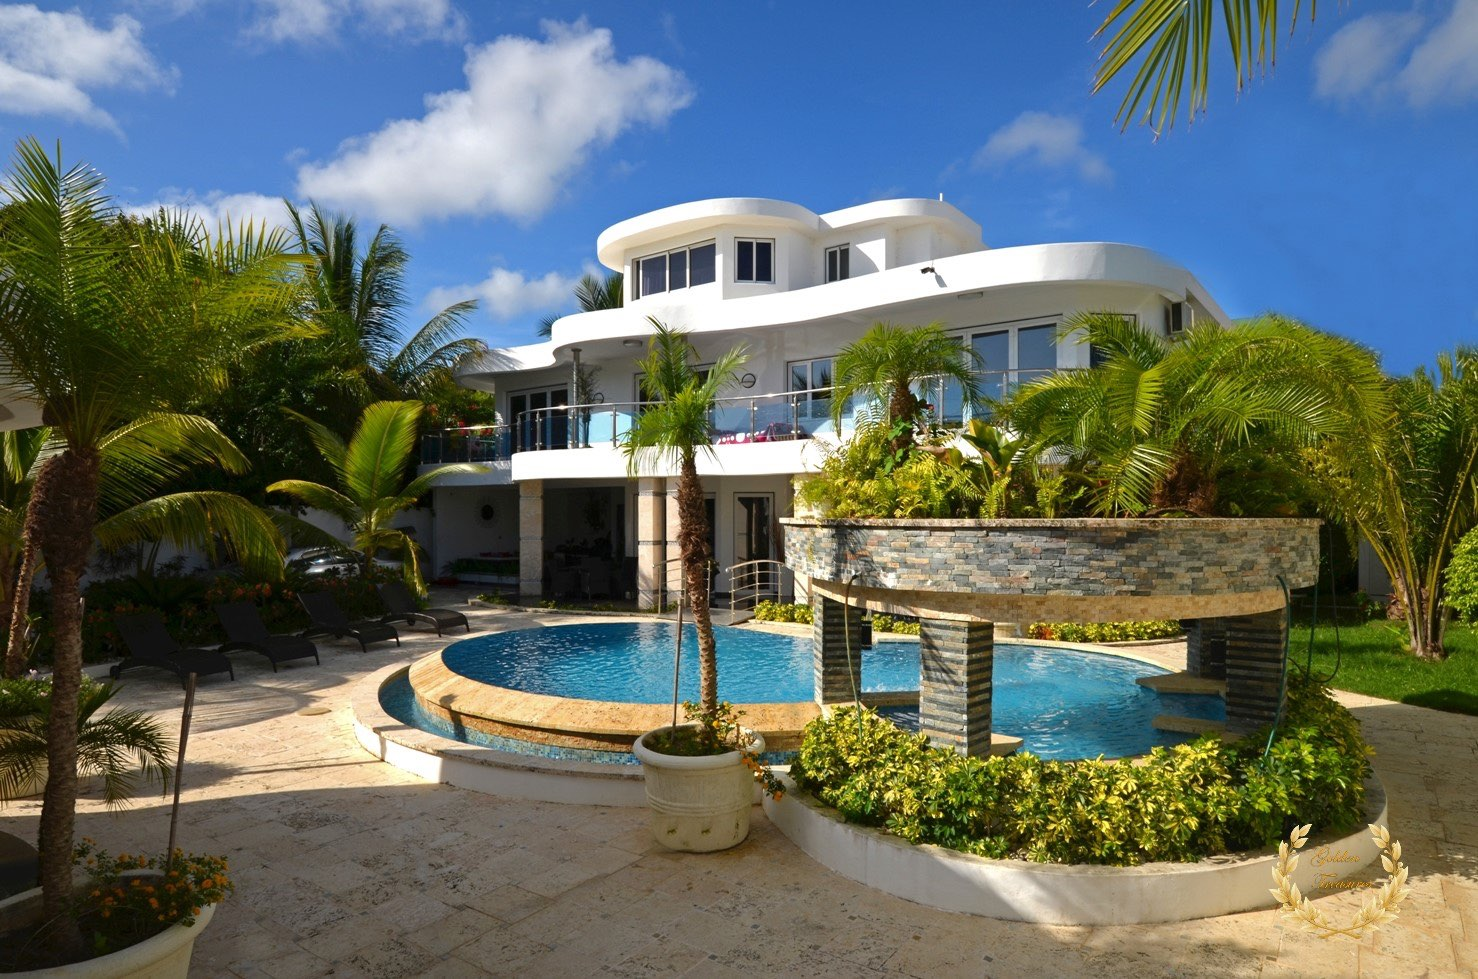 7 Bedroom Luxury Rental in Sosua